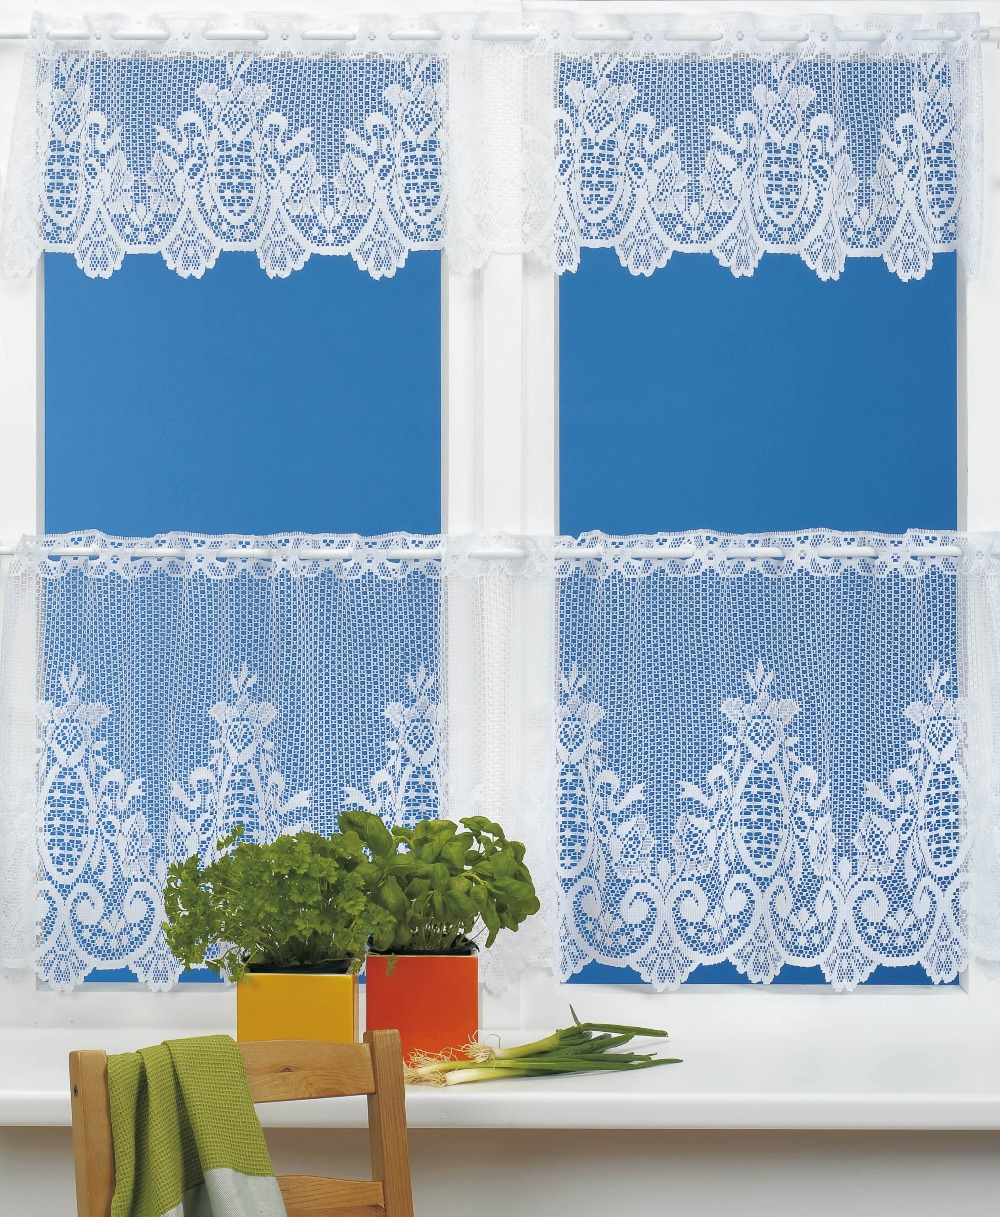 White Lace Kitchen Cafe Curtains For The Kitchen Country Style Curtains 2pieces Curtains Sets 160x30cm Or 160x50cm Curtain Curtain Eyeletlace Net Curtains Aliexpress